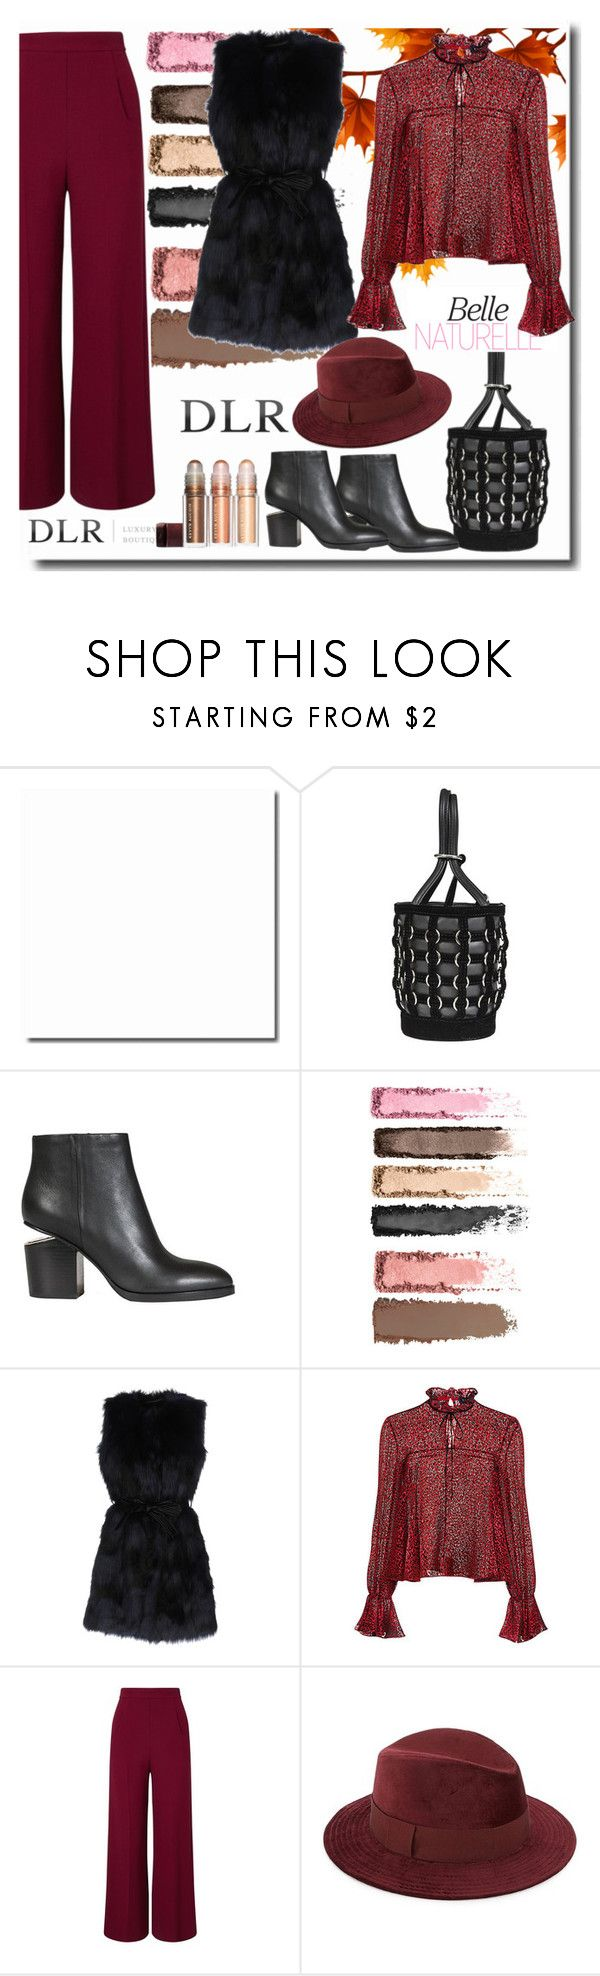 """""""welcome promo code DLR15"""" by misaflowers ❤ liked on Polyvore featuring Alexander Wang, Saloni, Roland Mouret and Saks Fifth Avenue"""